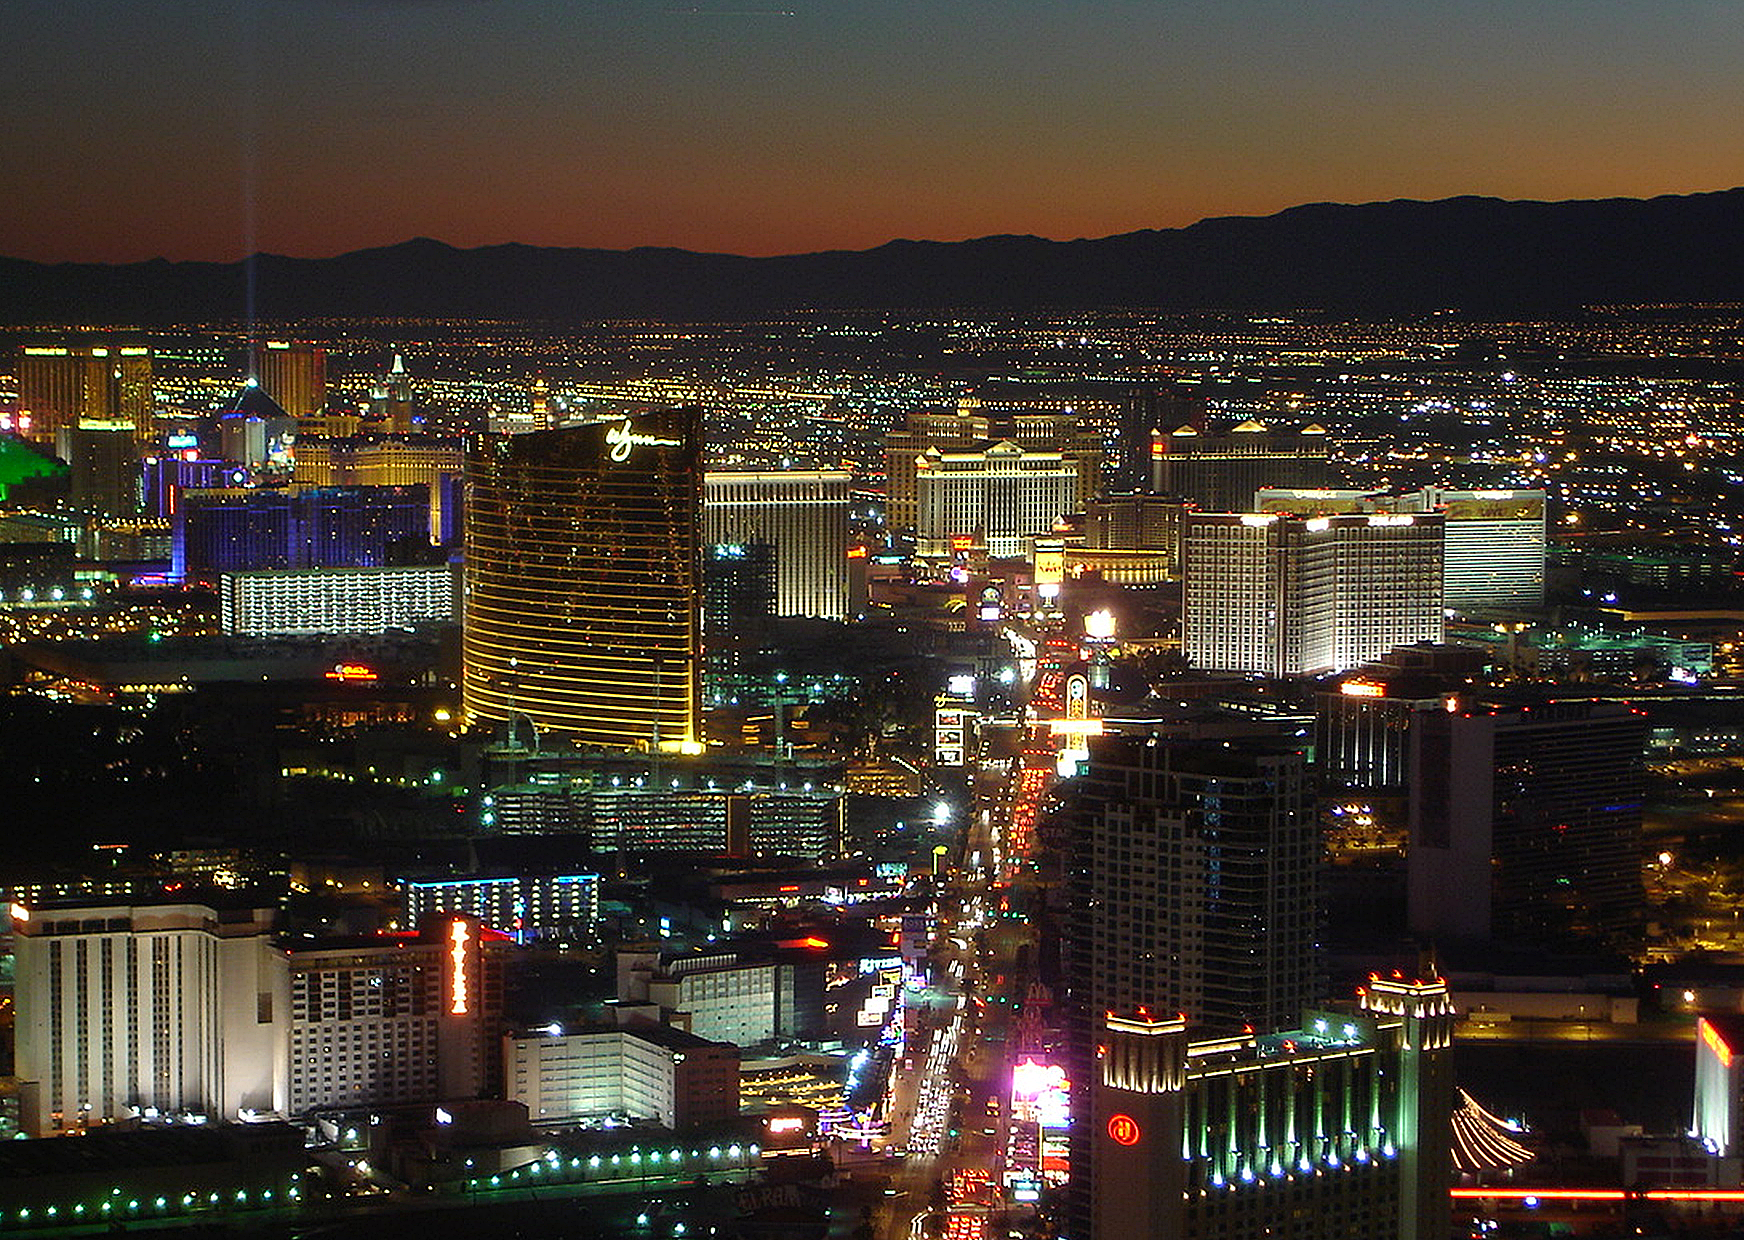 File:Las Vegas Strip.png - Wikipedia, the free encyclopedia